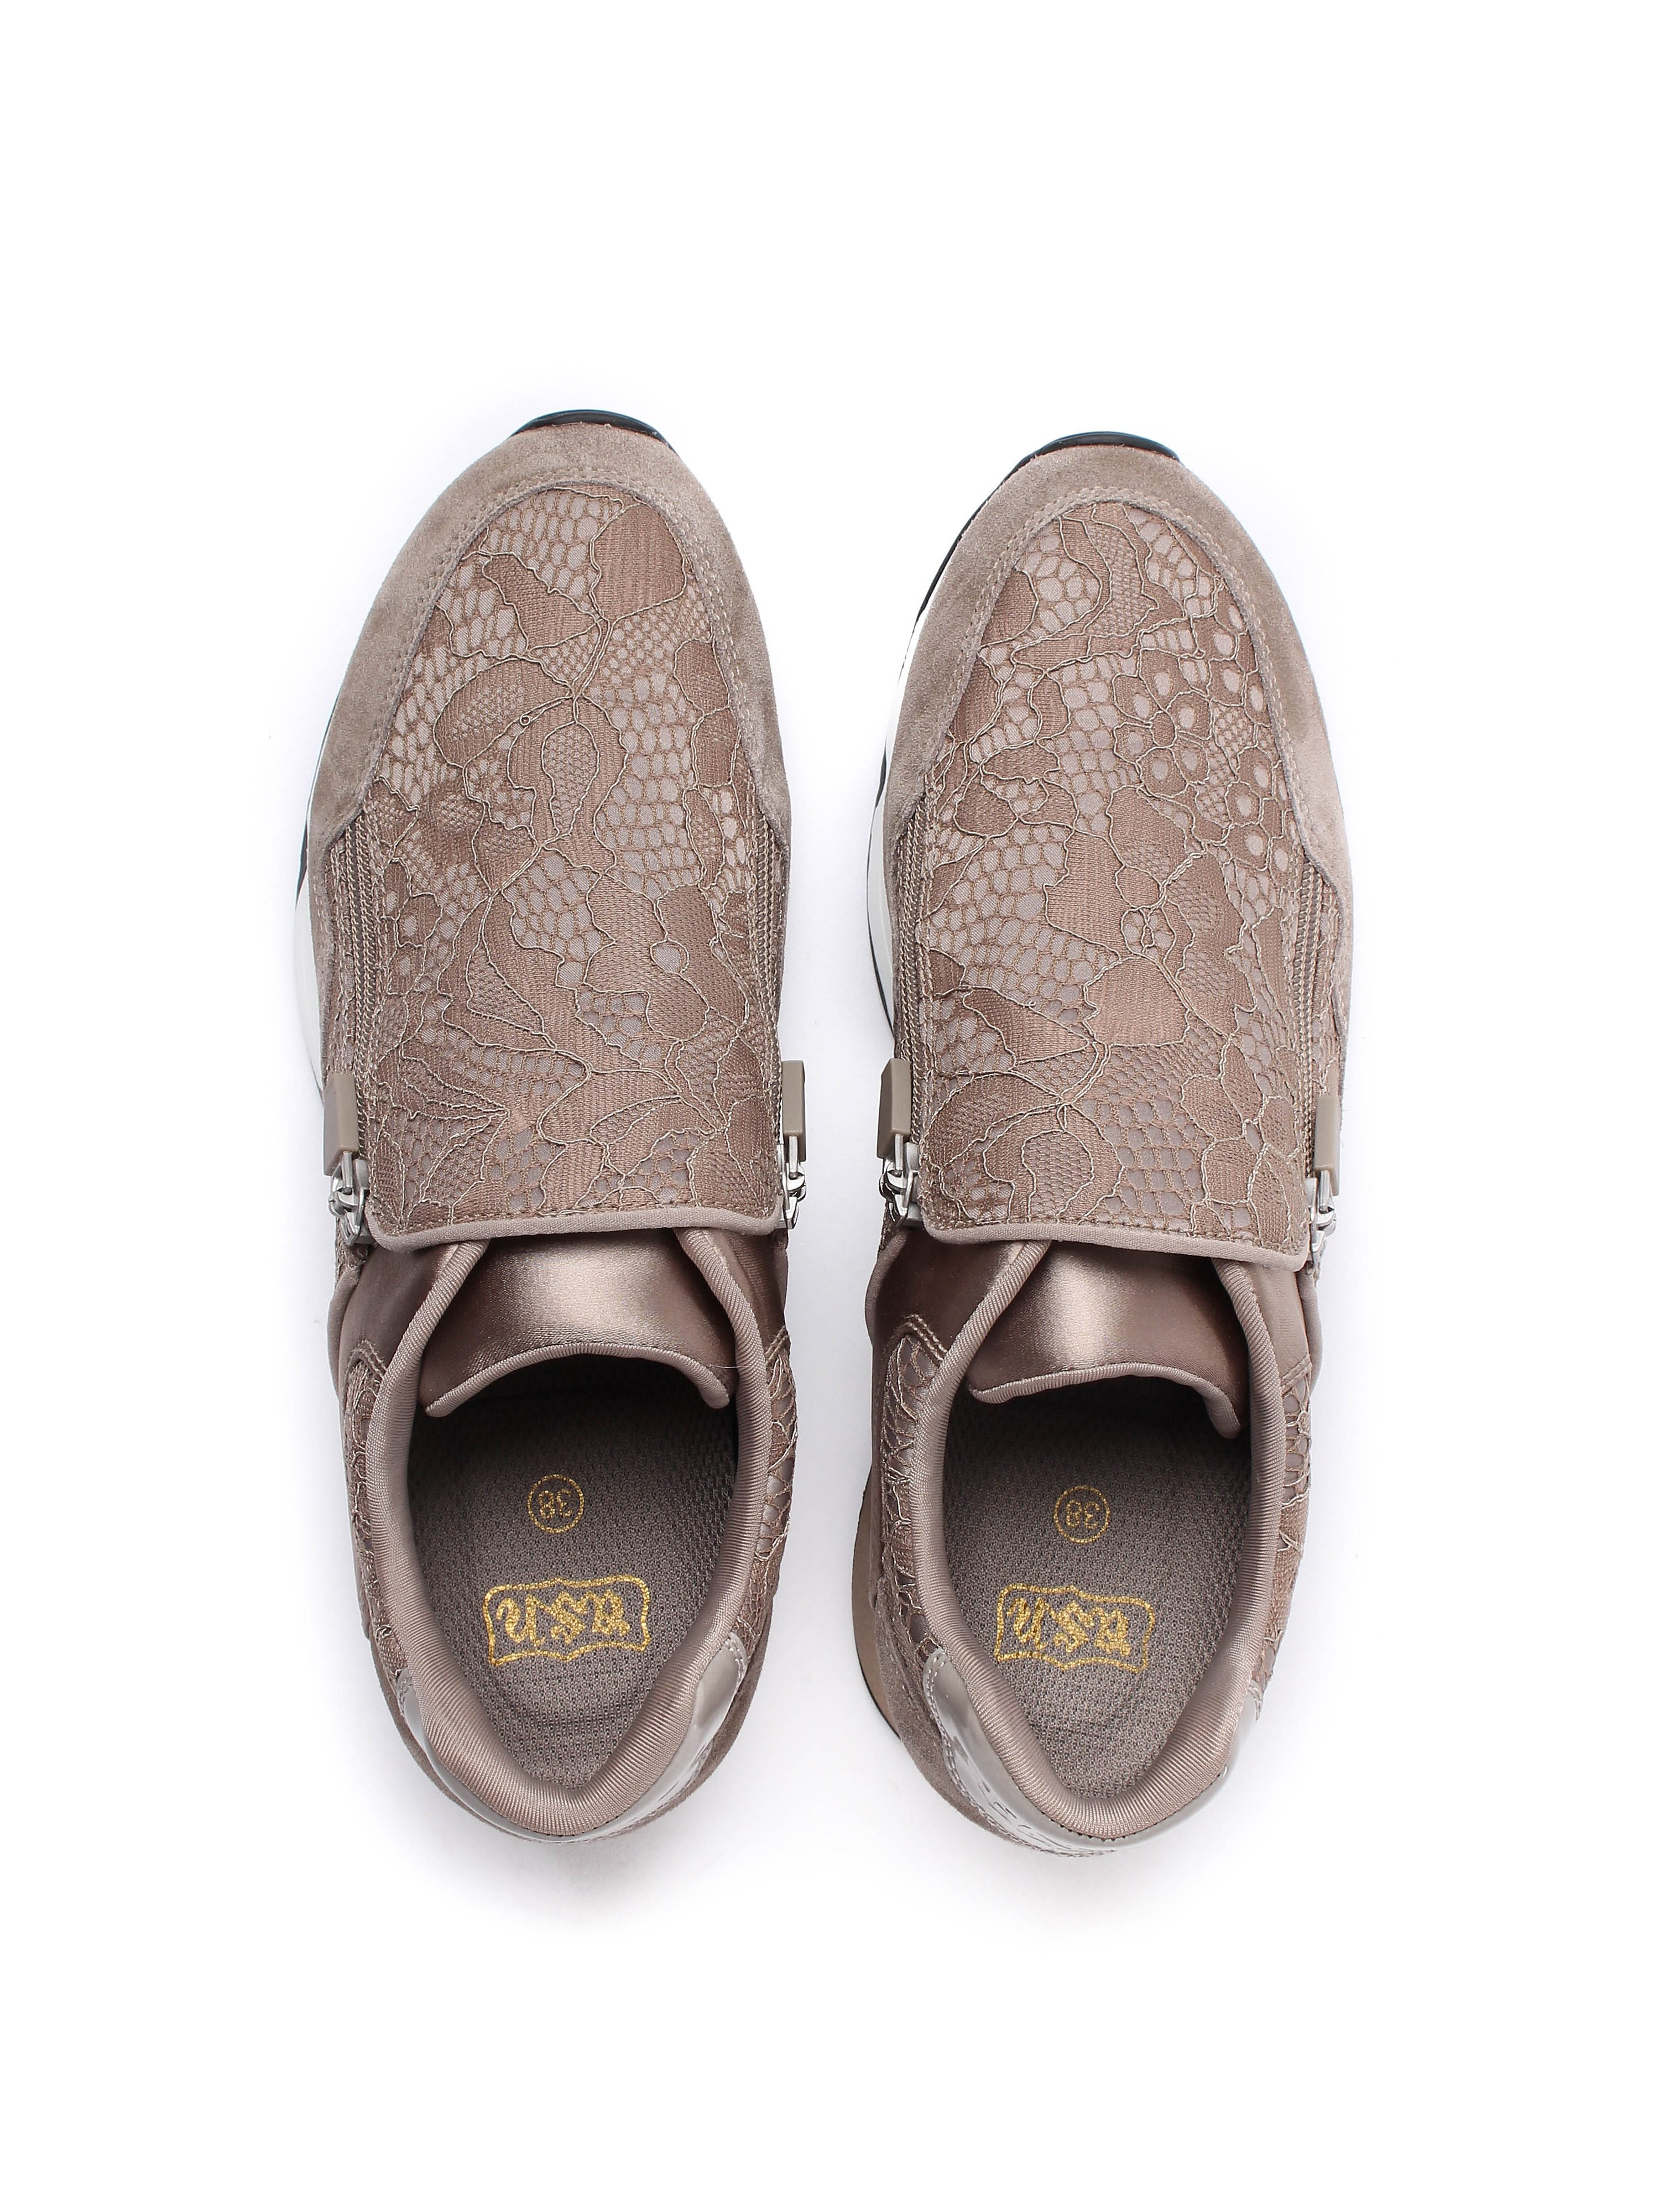 Ash Women's Look Lace Satin & Suede Trainers - Taupe